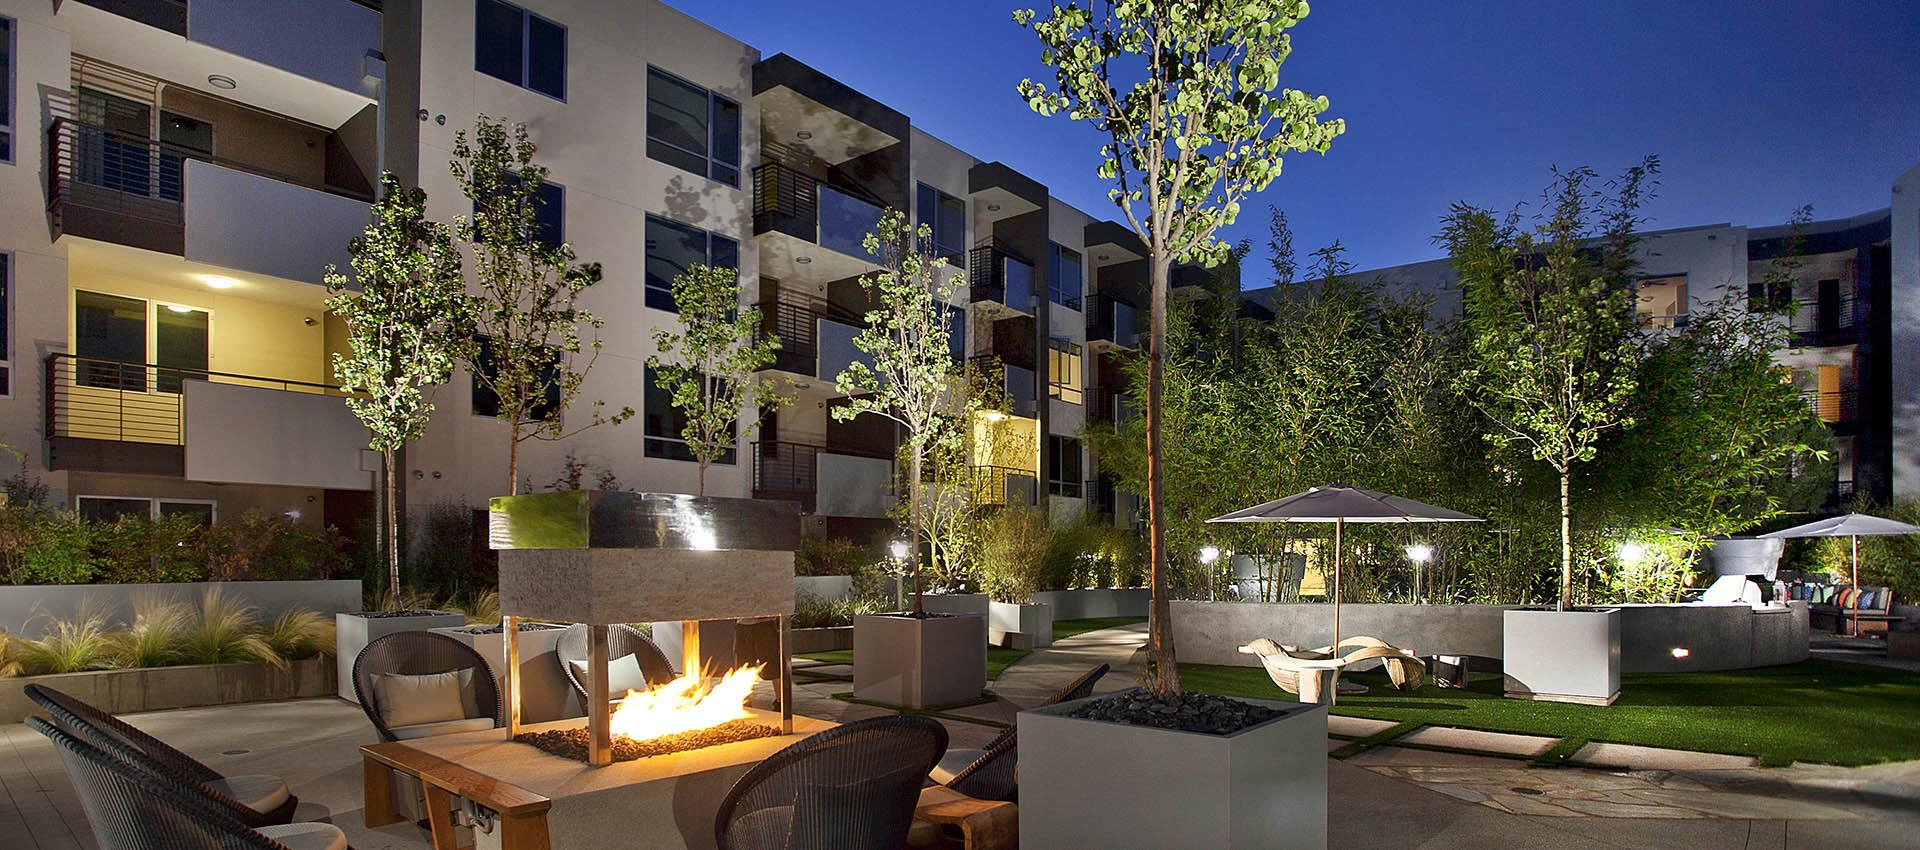 Fire pit at apartments in Glendale